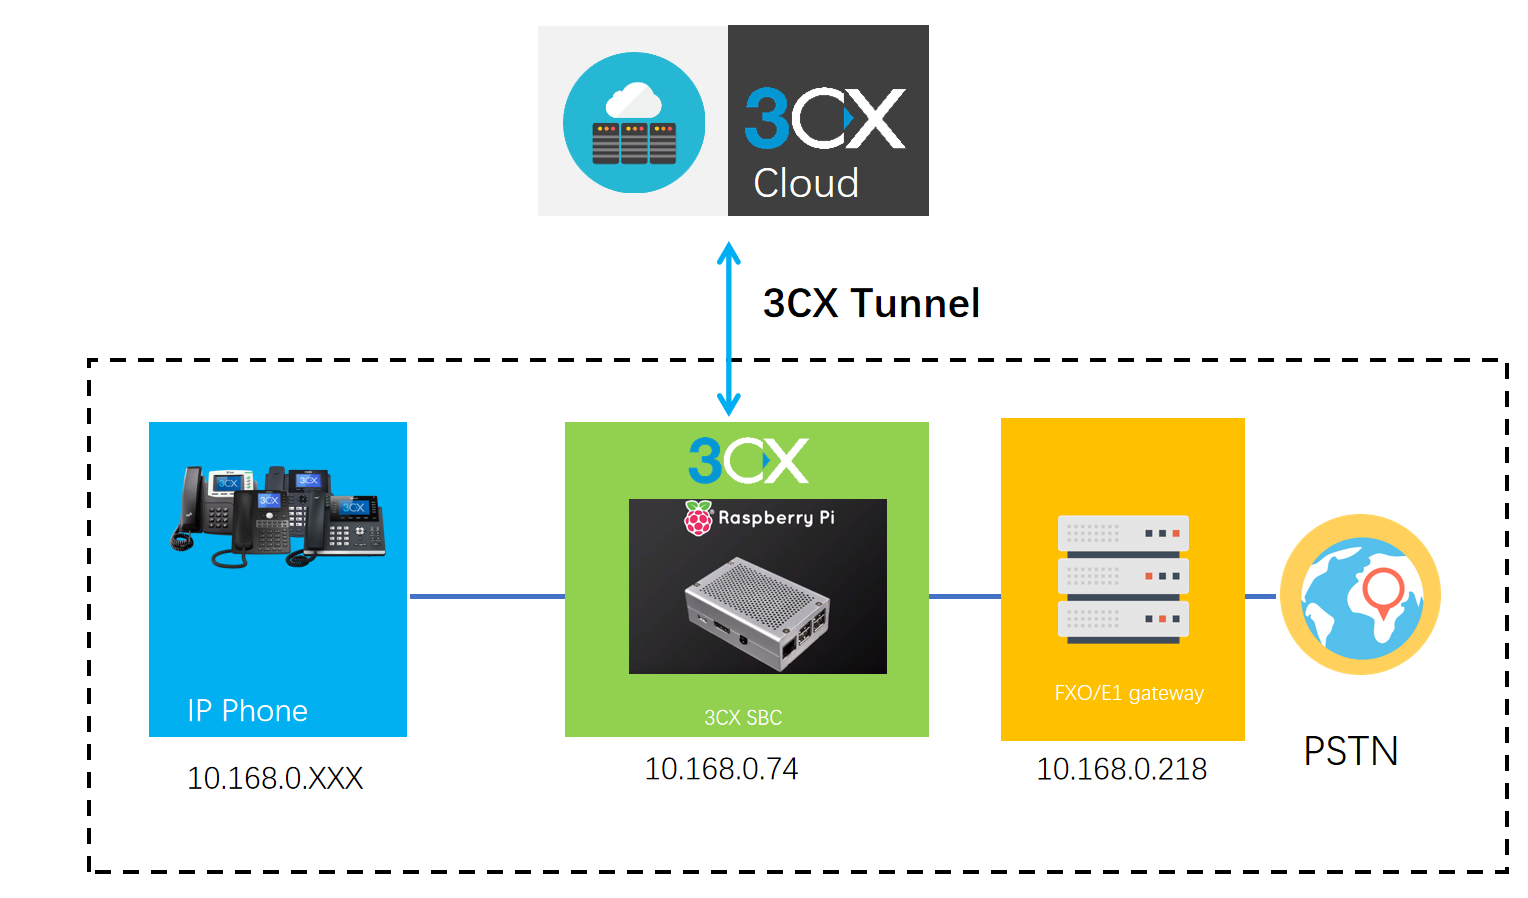 How to connect FXO gateway to 3CX SBC - 58VOIP-3CX